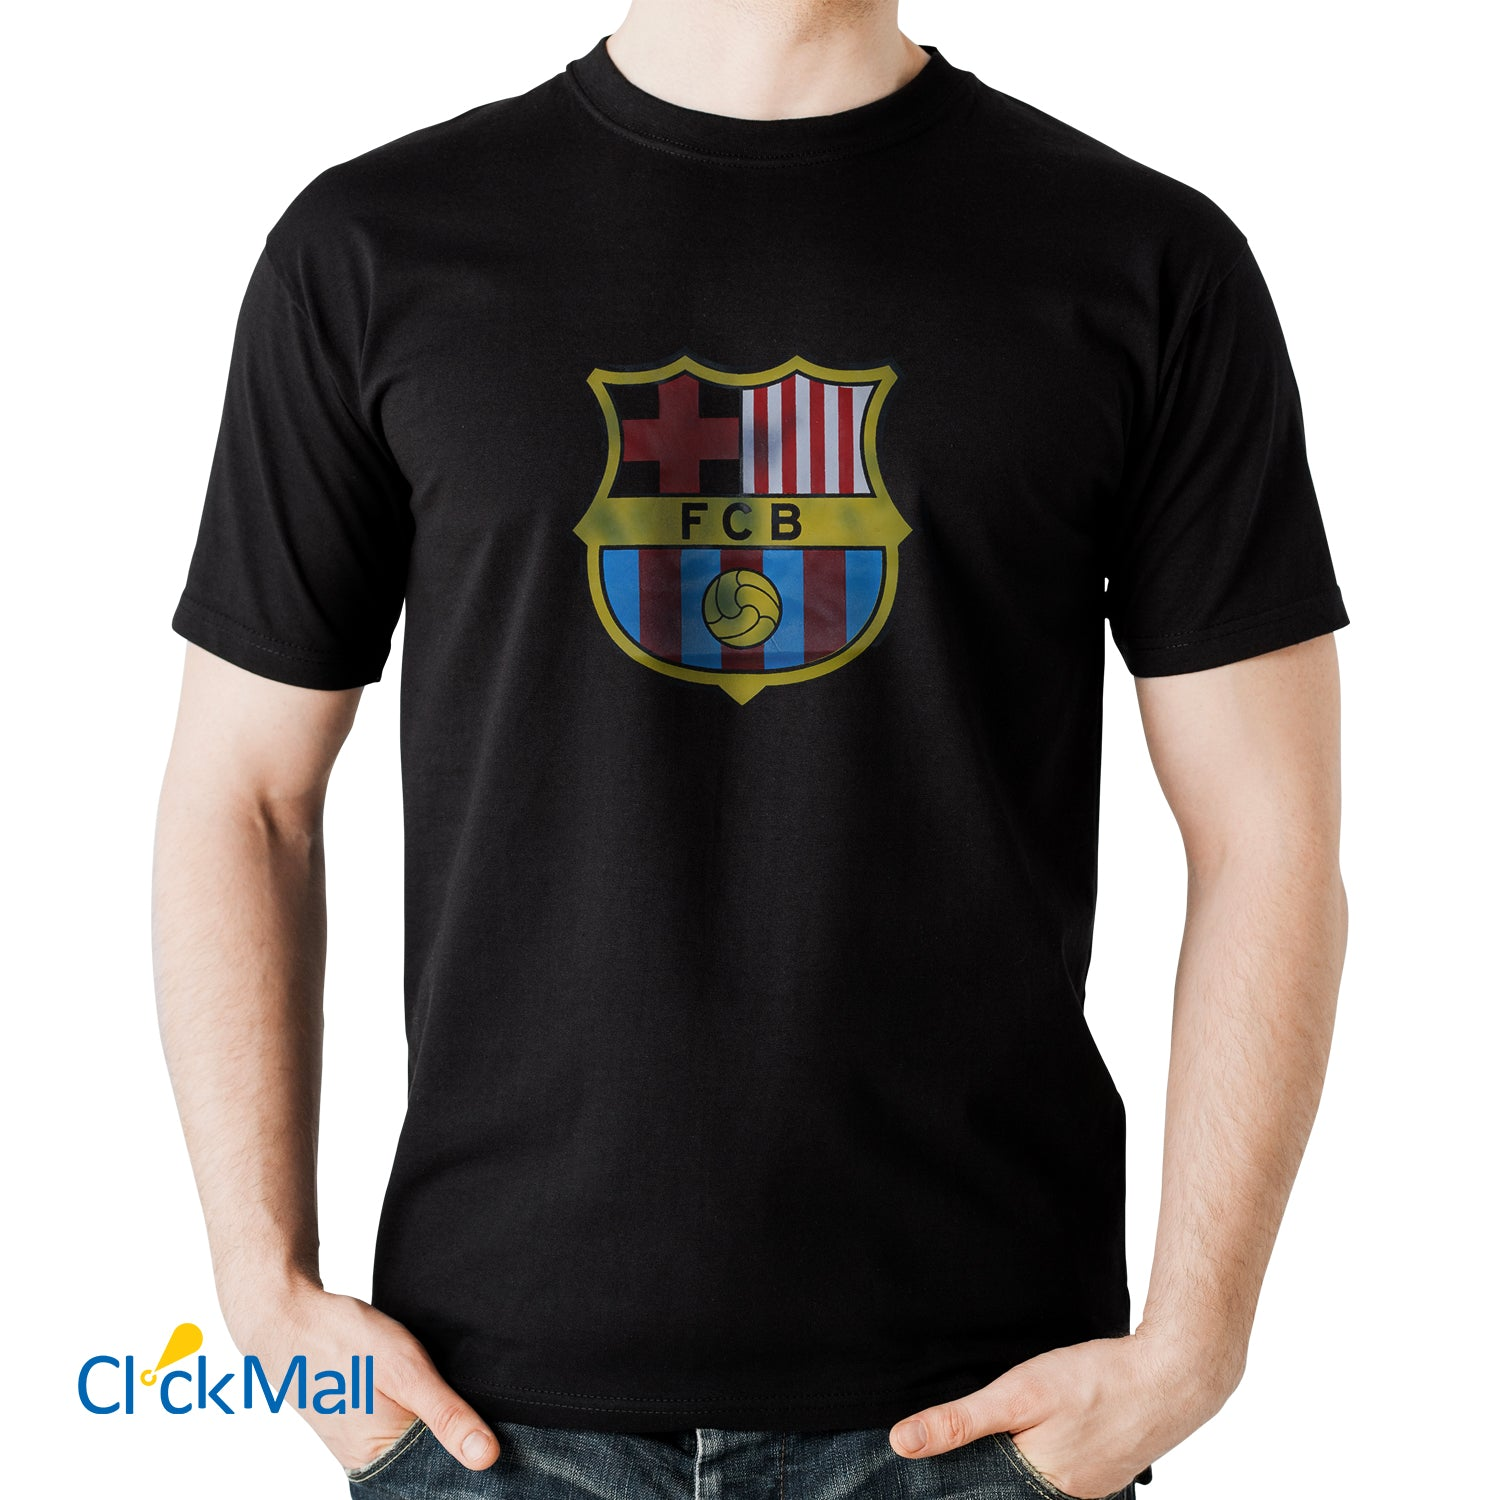 Time Line Black FCB Printed Polyester Sports T Shirt for Men